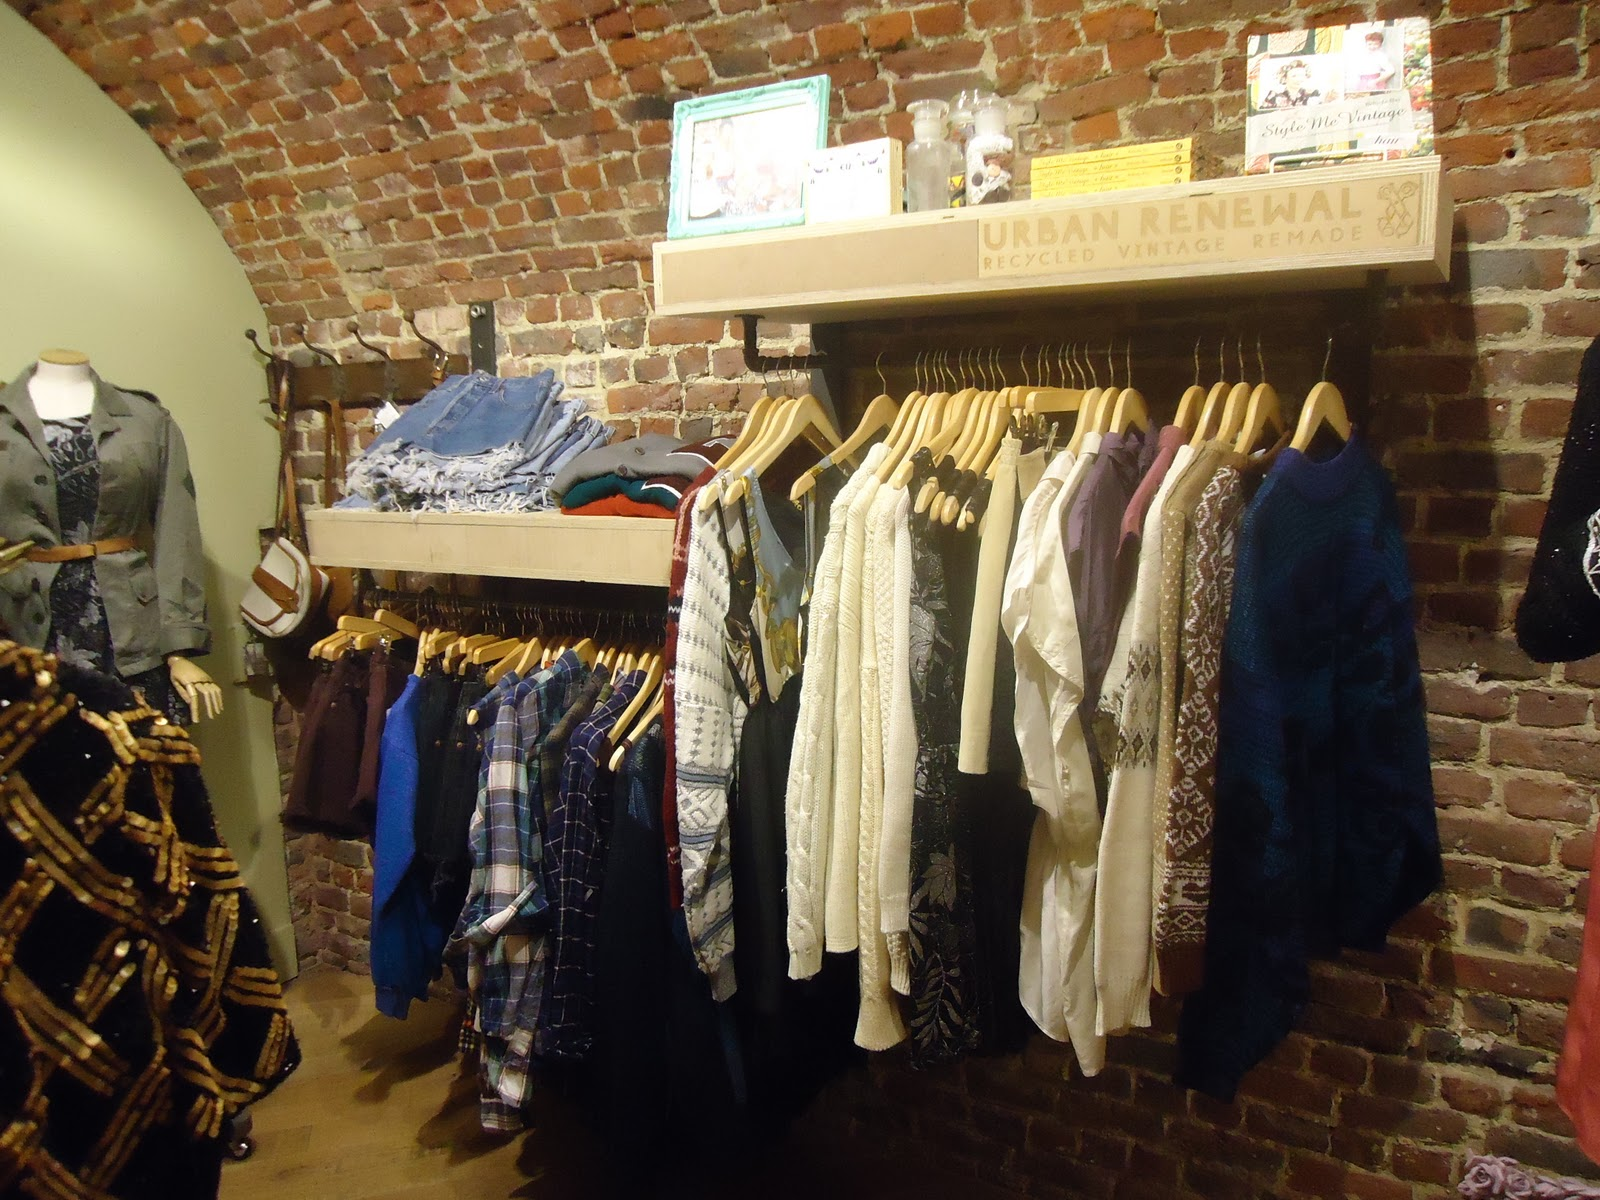 Art mise et moi urban outfitters - Urban outfiters bruxelles ...